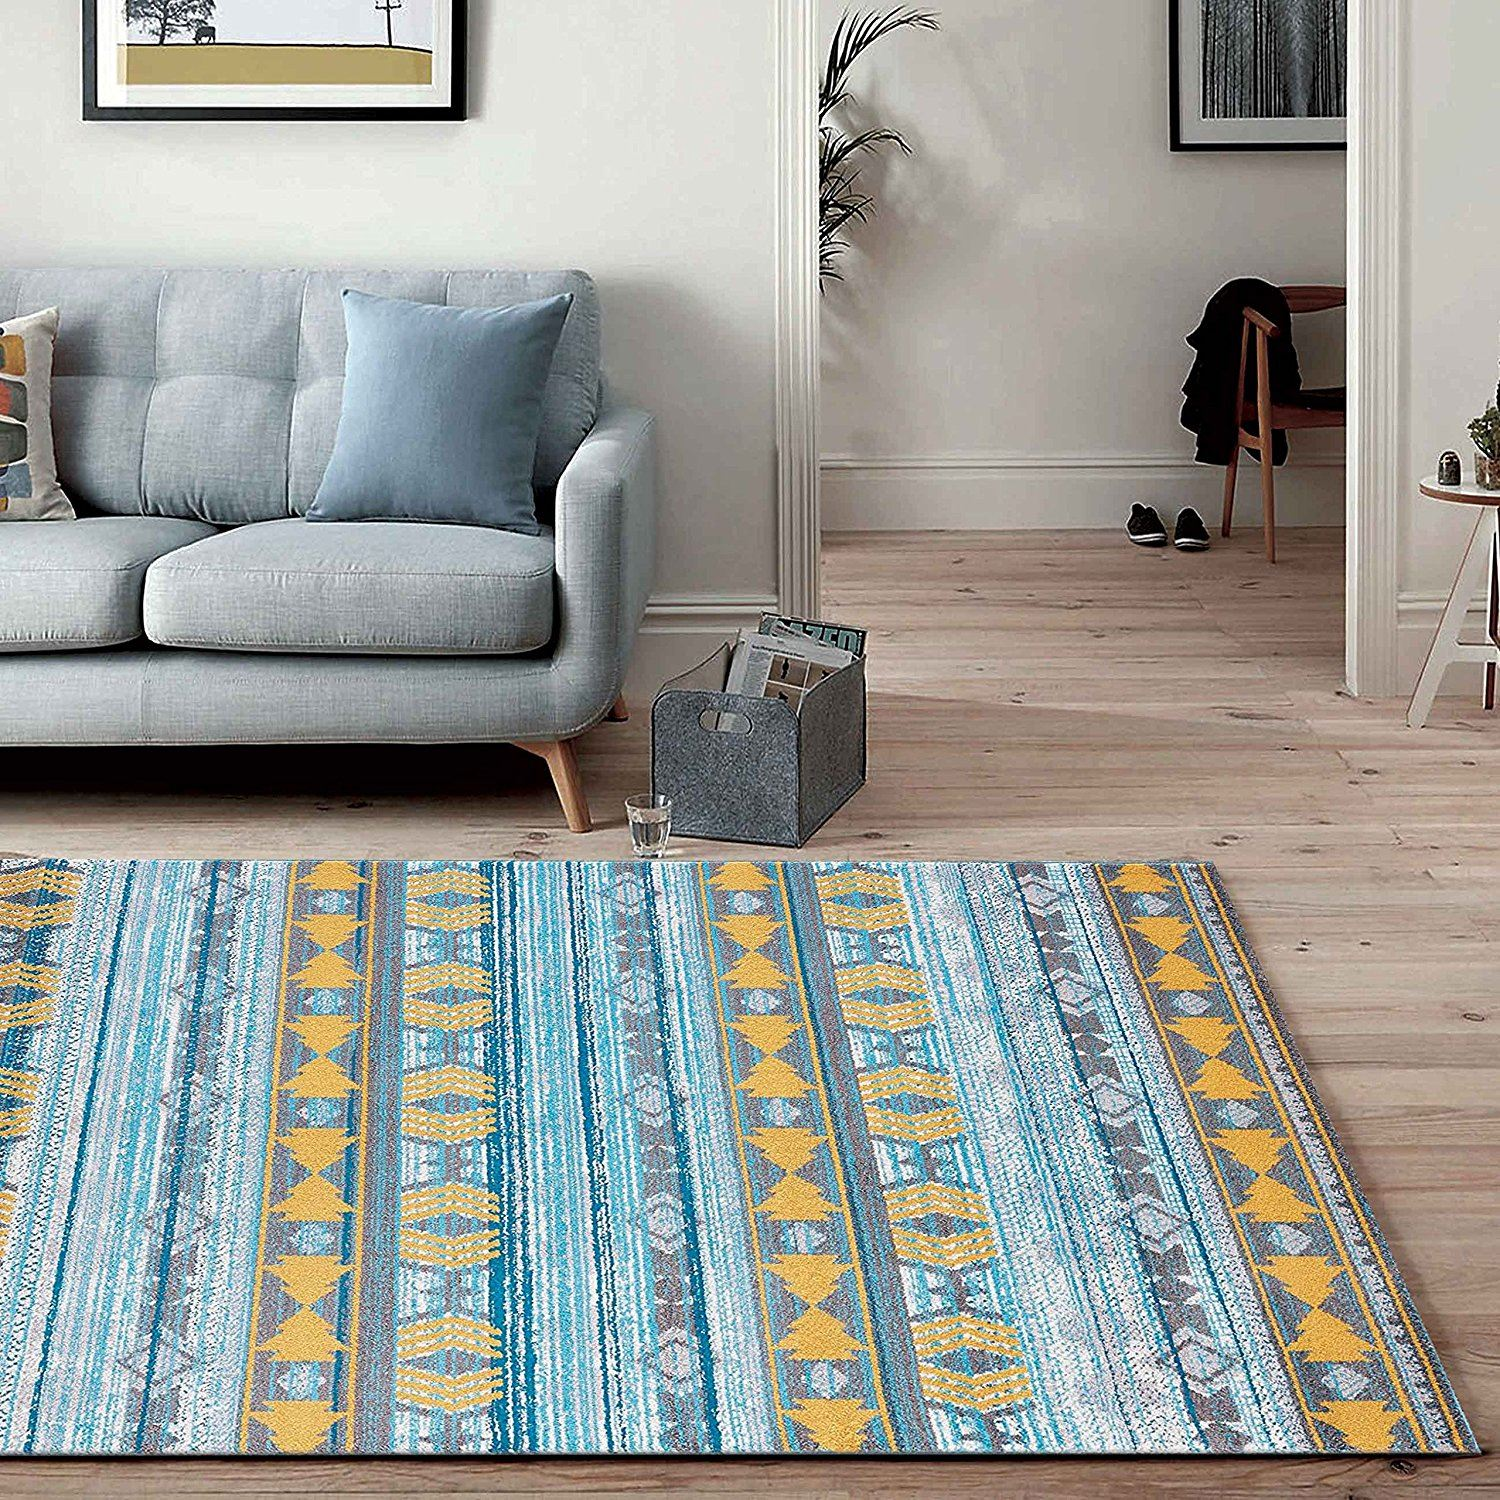 Details About A2z Rug Contemporary Retro Living Room Rugs Modern Geometric Bedroom Area Carpet